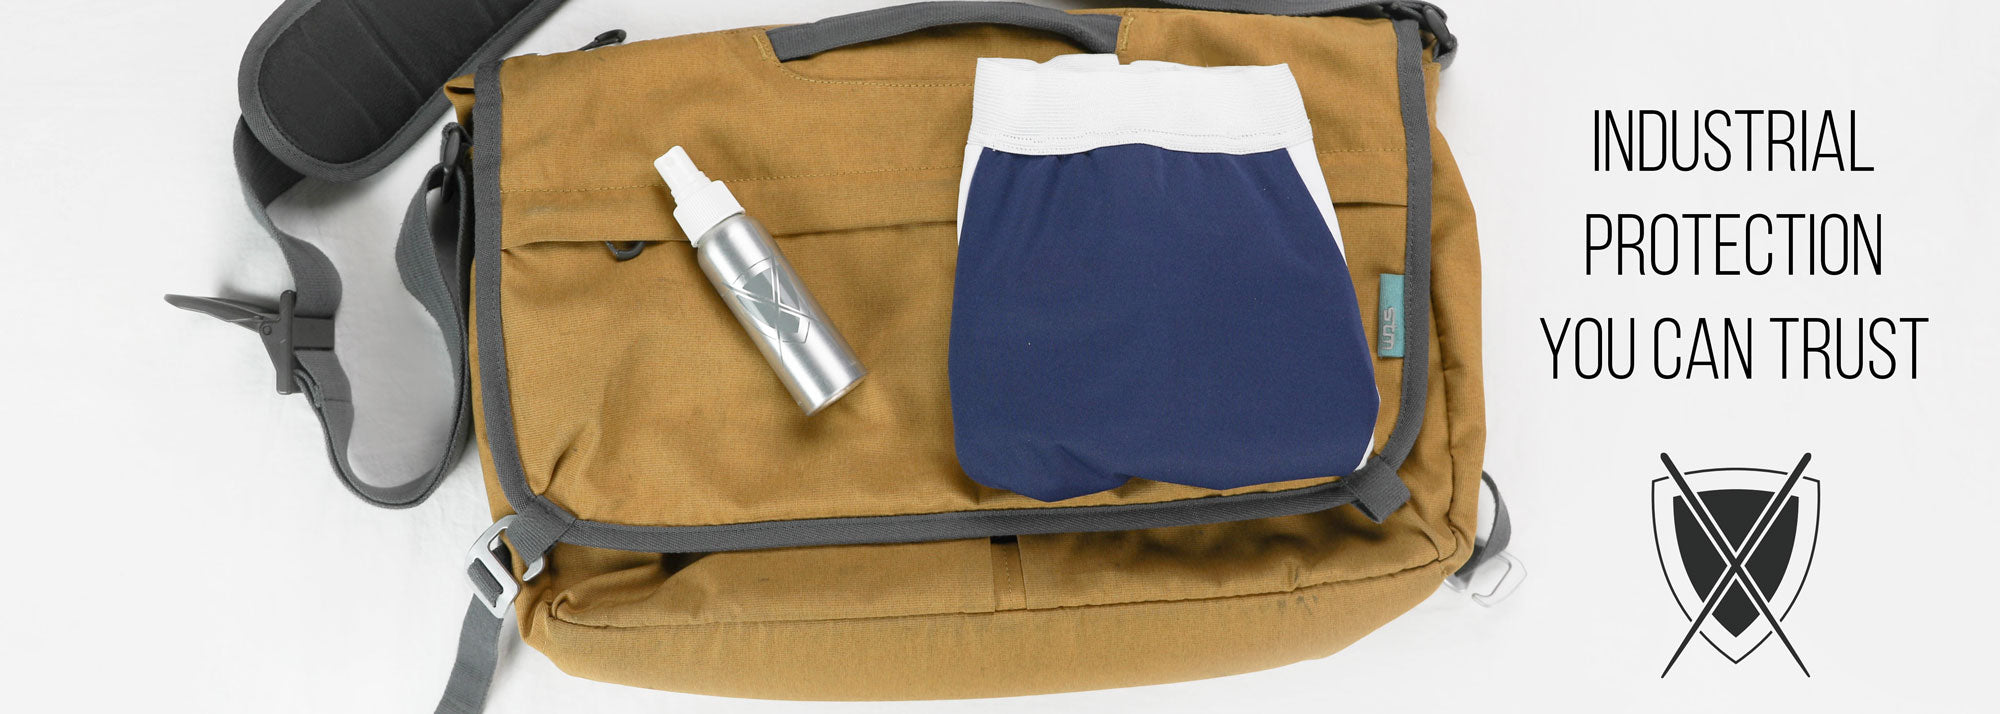 Havy Duty Industrail Cloth Diaper Protection for Adults with Incontinence